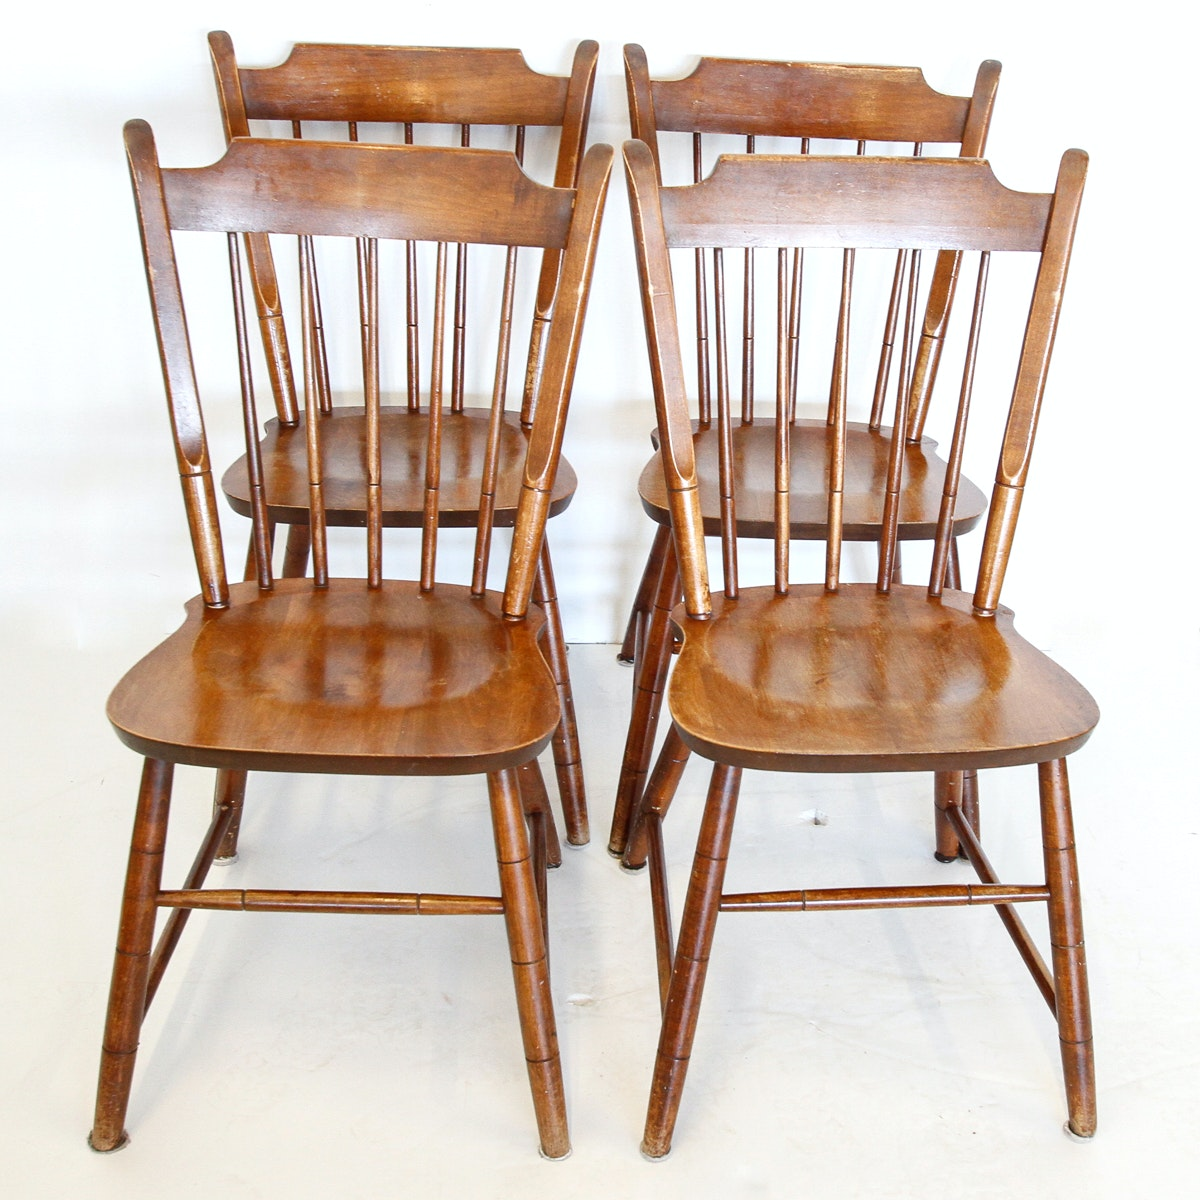 Set of Vintage Windsor Style Dining Chairs by Nashville Upholstering Co.